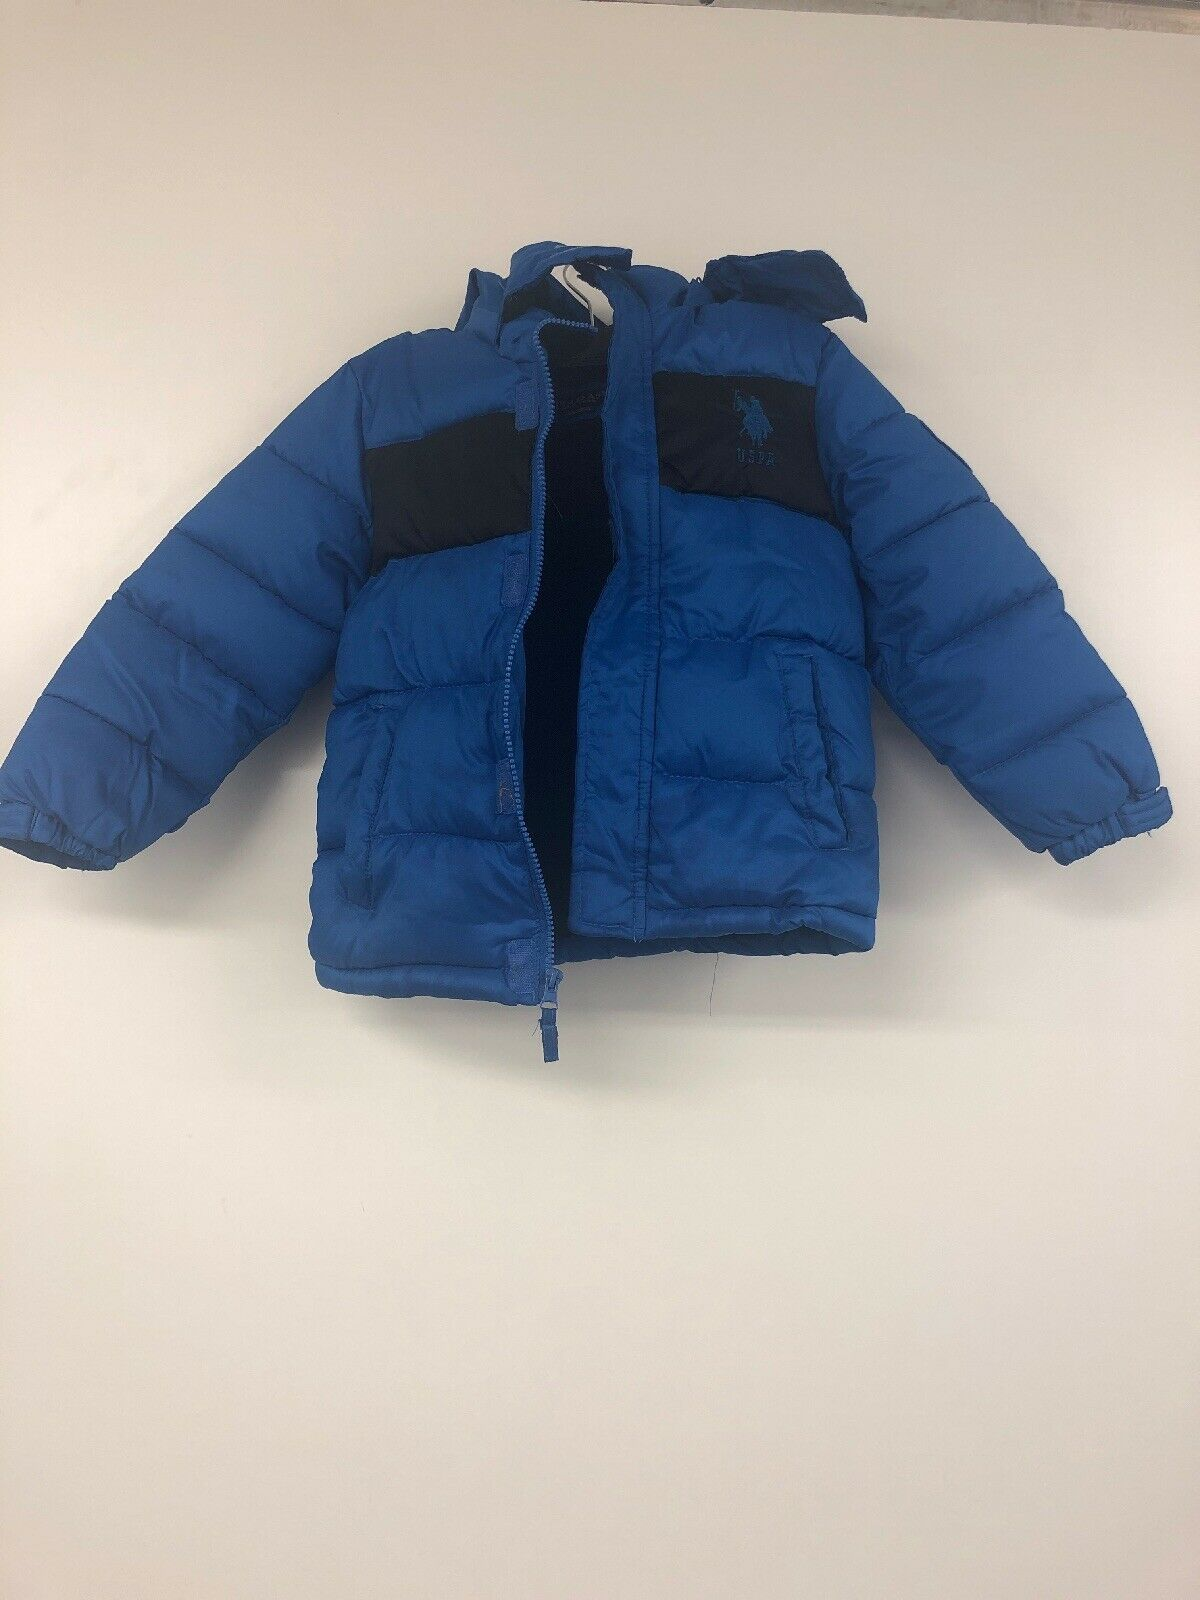 Primary image for US Polo Association Boys Sporty Bubble Jacket , Blue/Black 5/6